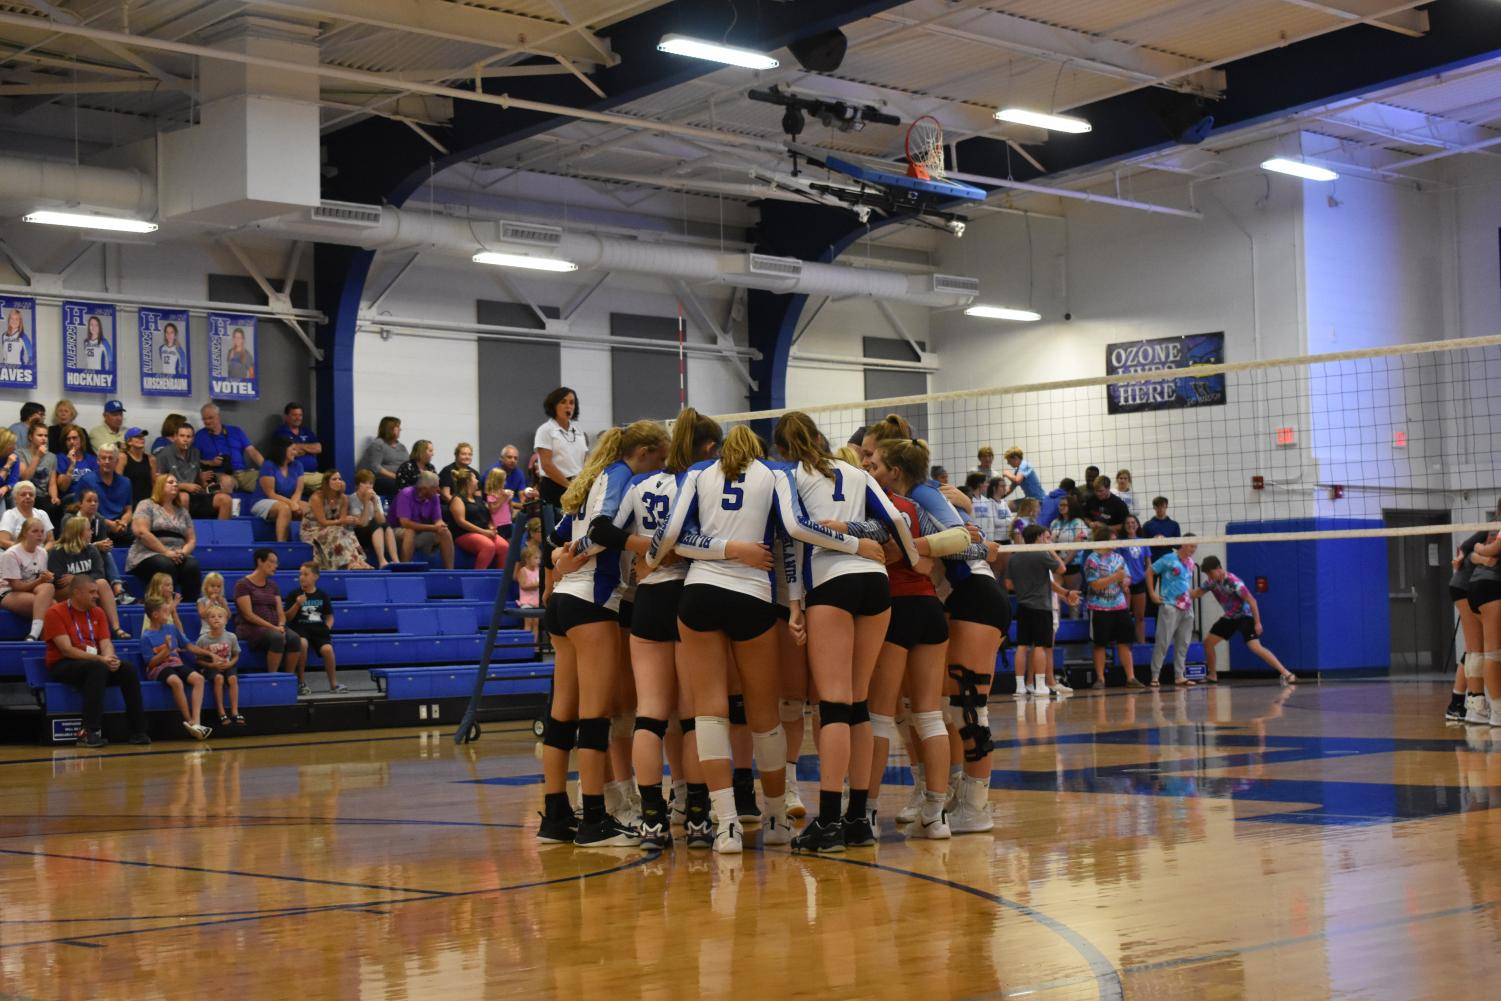 The Highlands girls varsity volleyball team huddles up before the start of the game.